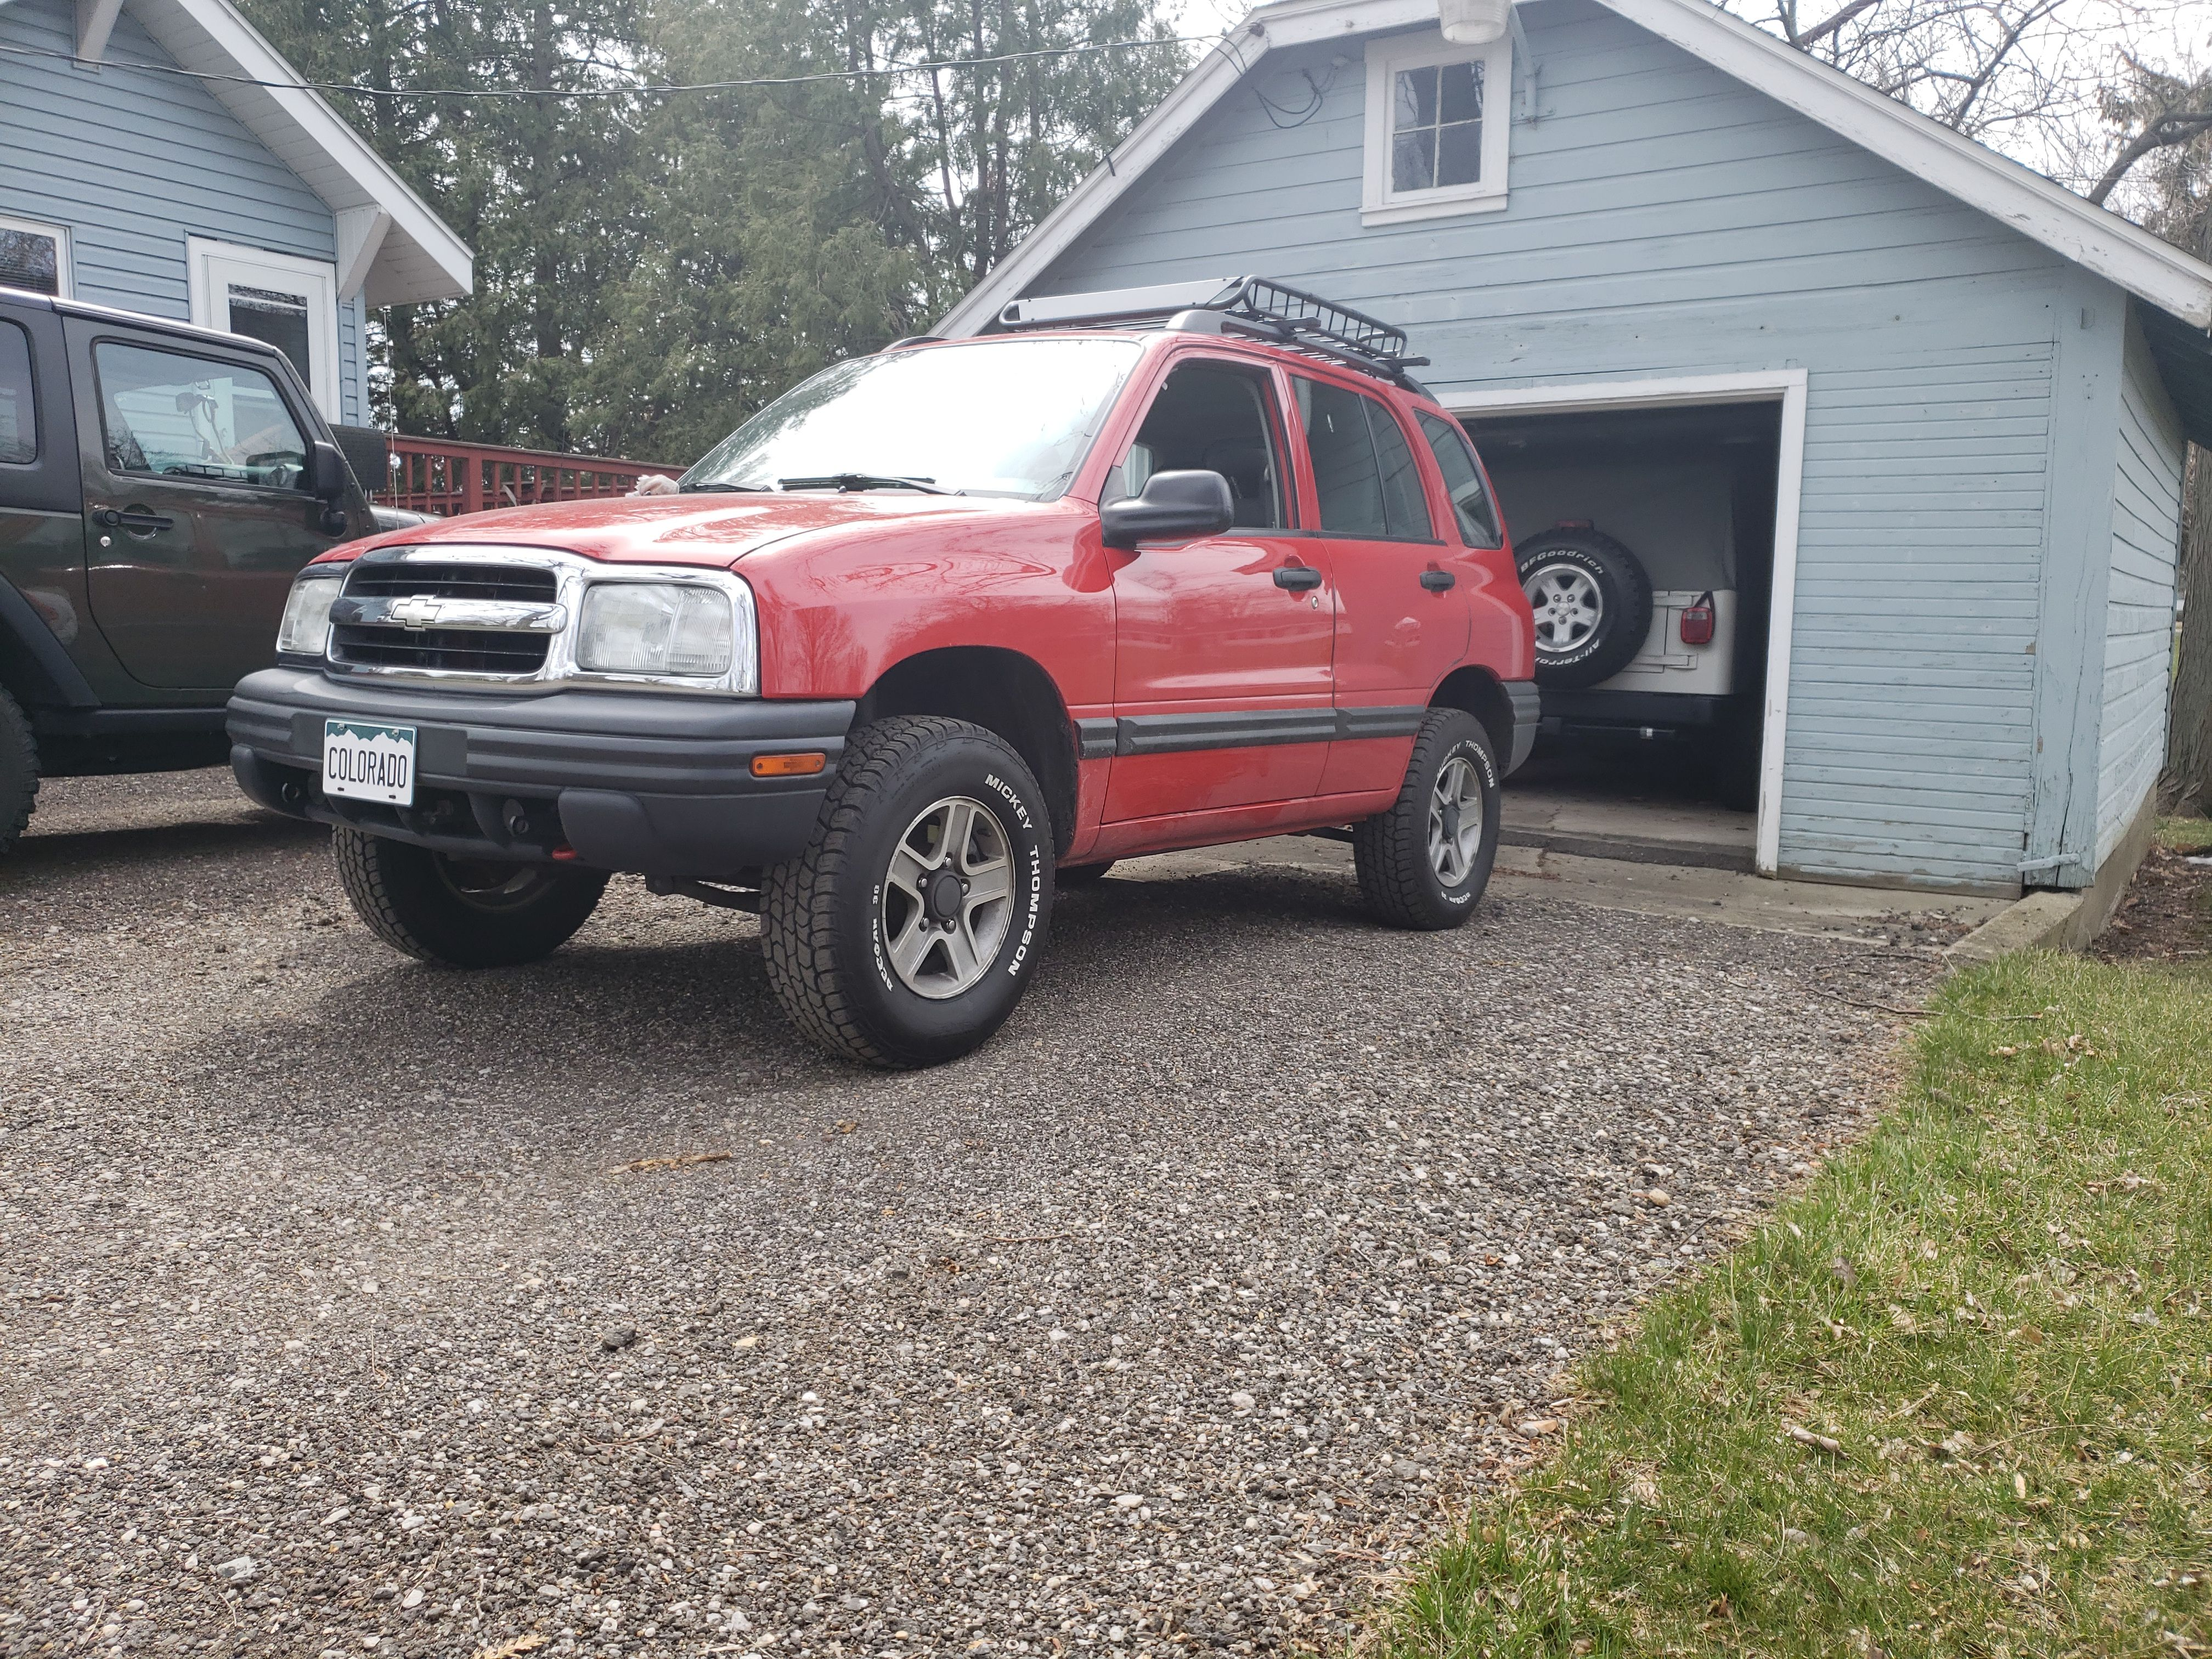 medium resolution of 2003 chevy tracker lifted with 235 mickey thompsons